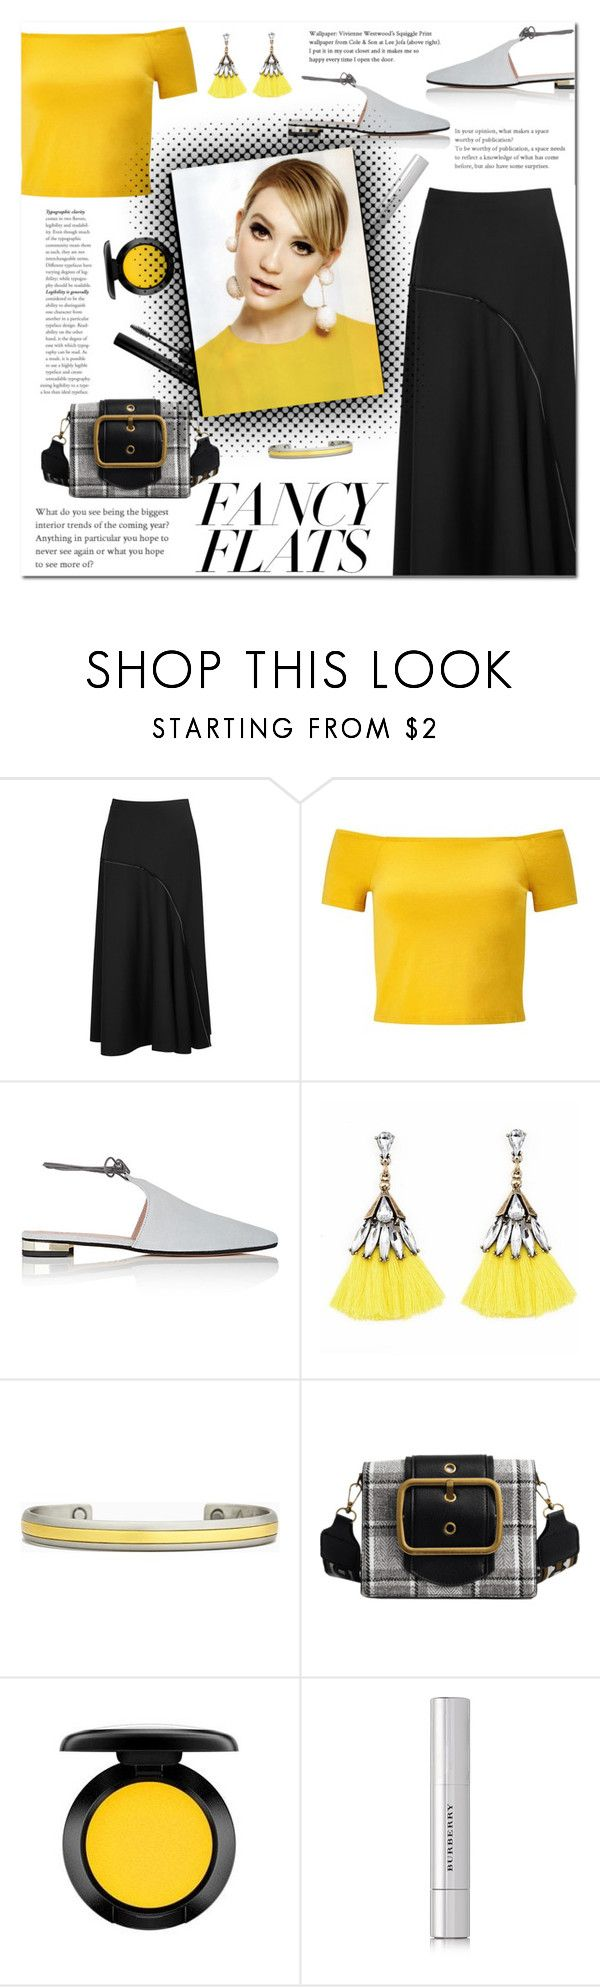 """""""How to wear an Asymmetrical Midi Skirt!"""" by disco-mermaid ❤ liked on Polyvore featuring The Row, Miss Selfridge, Barneys New York, Sergio Lub, MAC Cosmetics, Burberry and Forever 21"""